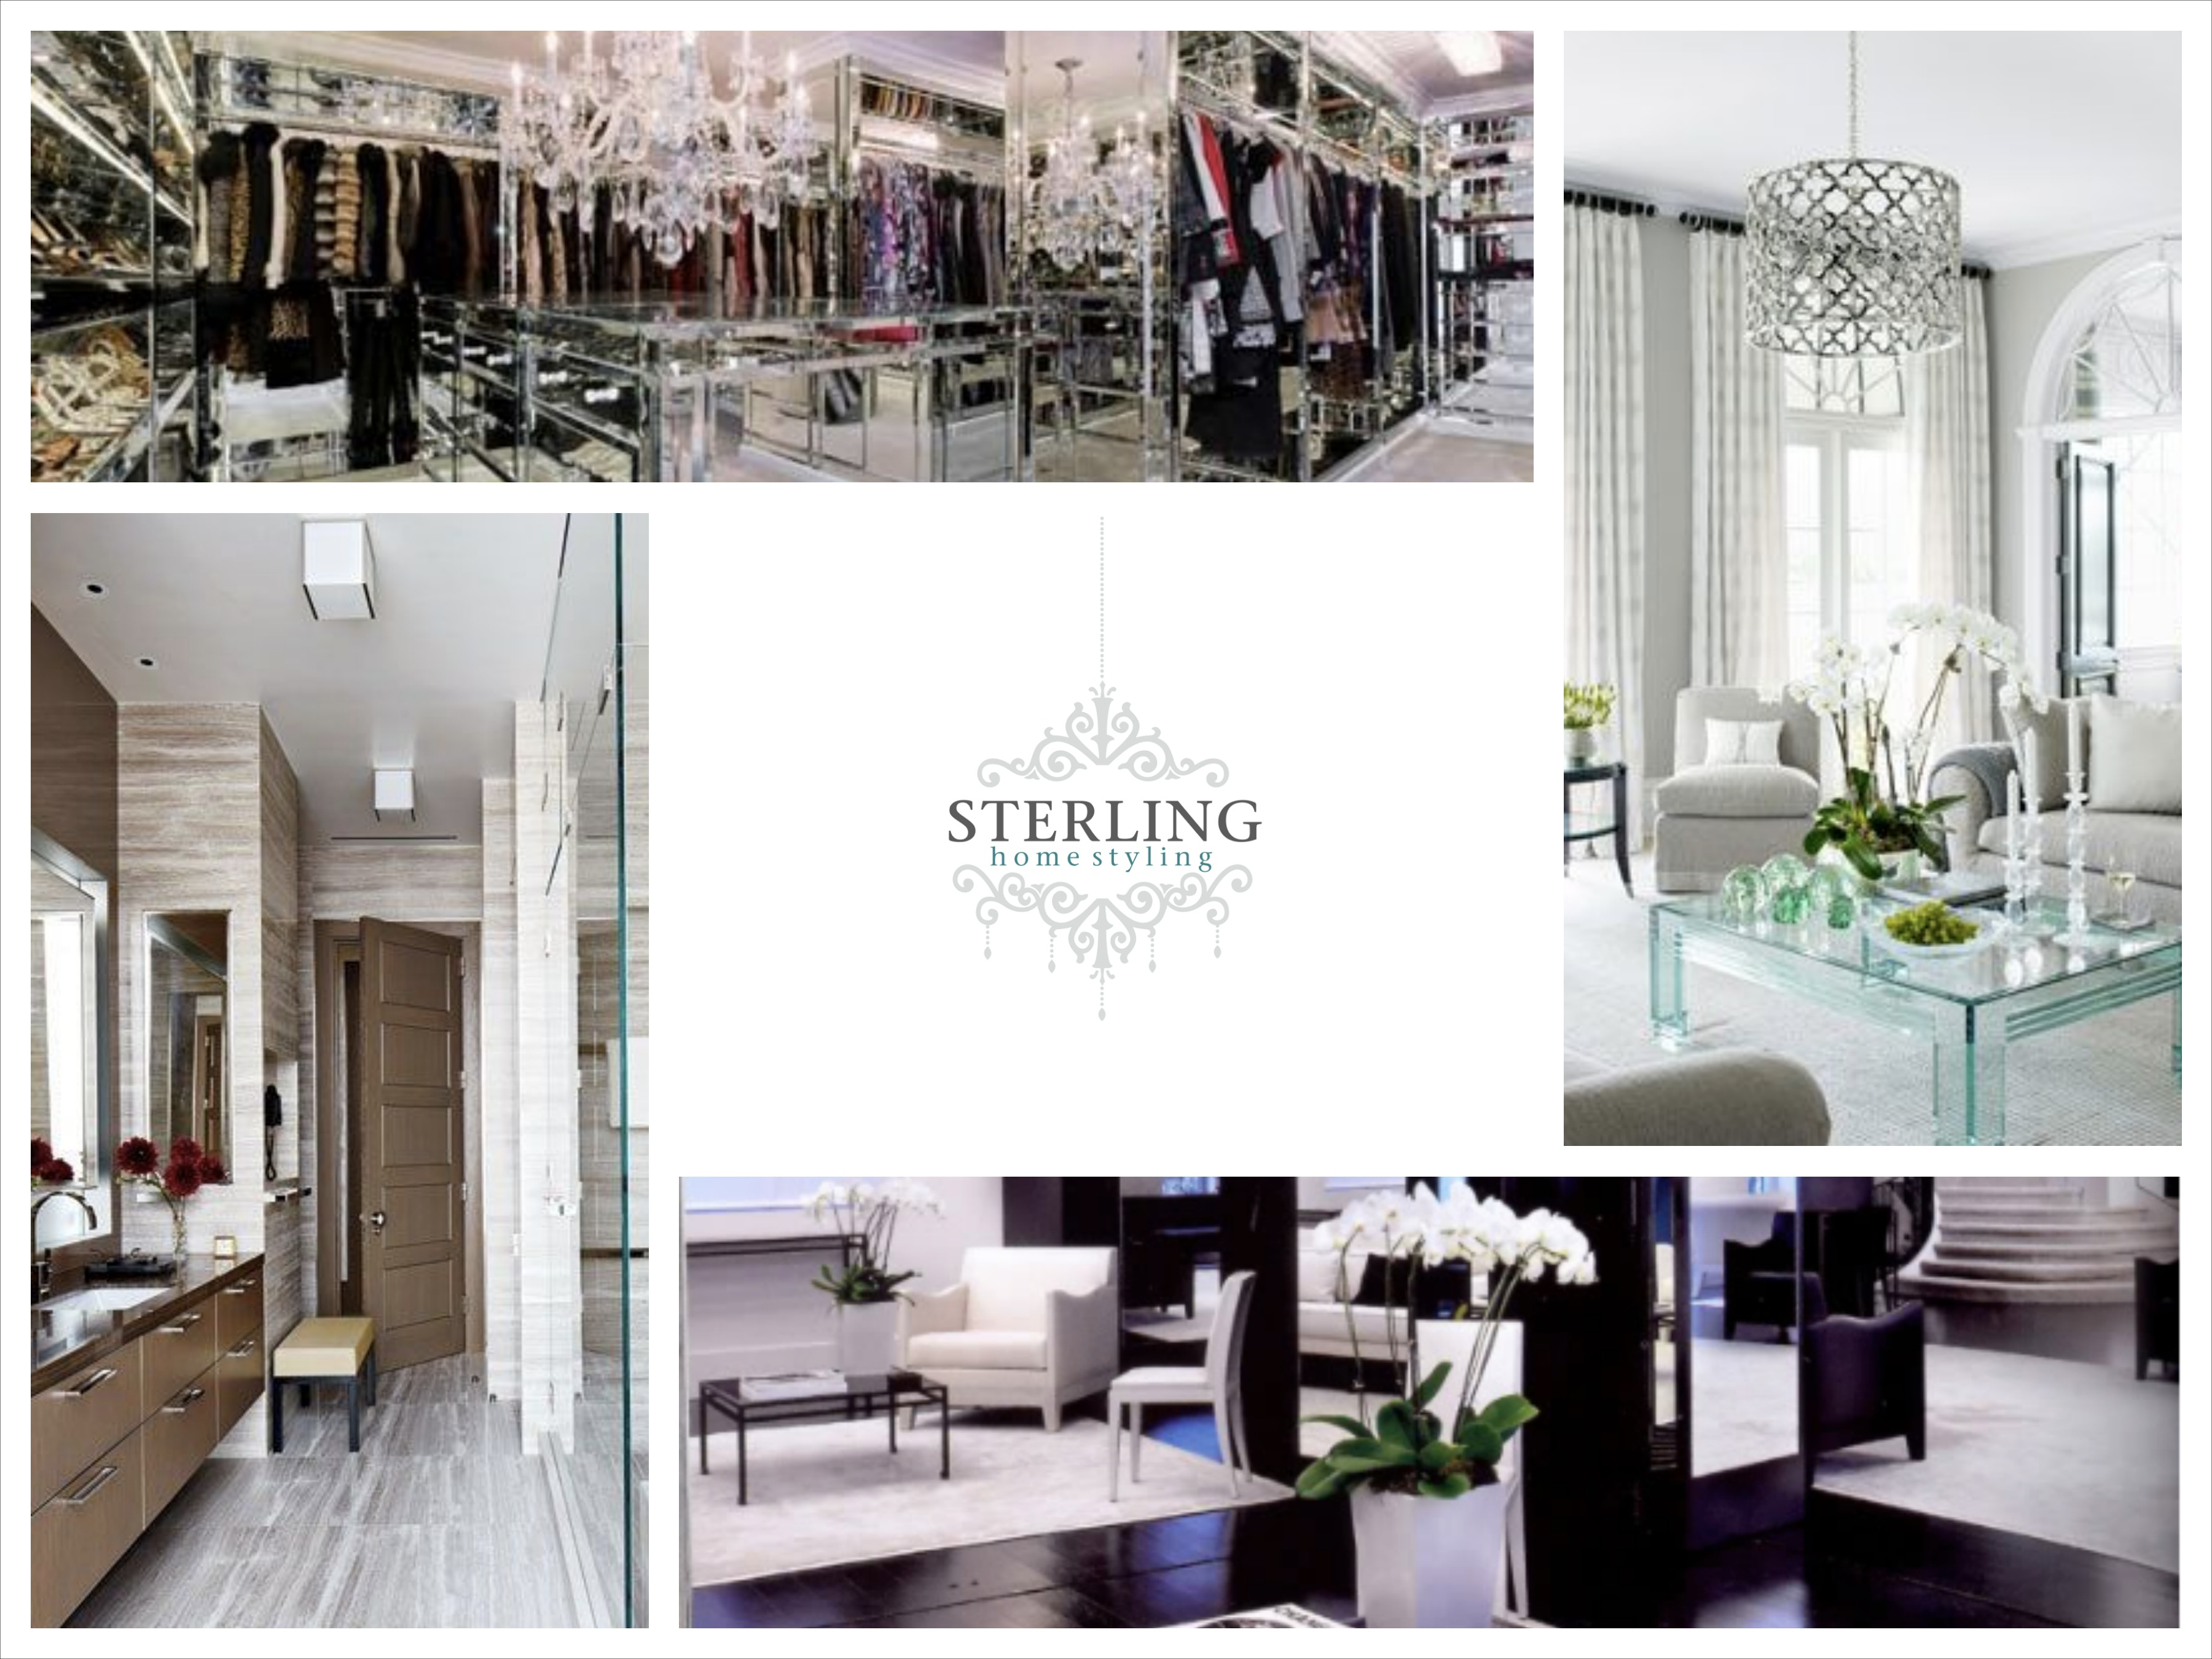 2-Day Home Staging to Sell Training Course for Realtors in Dubai – Conducted By Sterling Home Styling